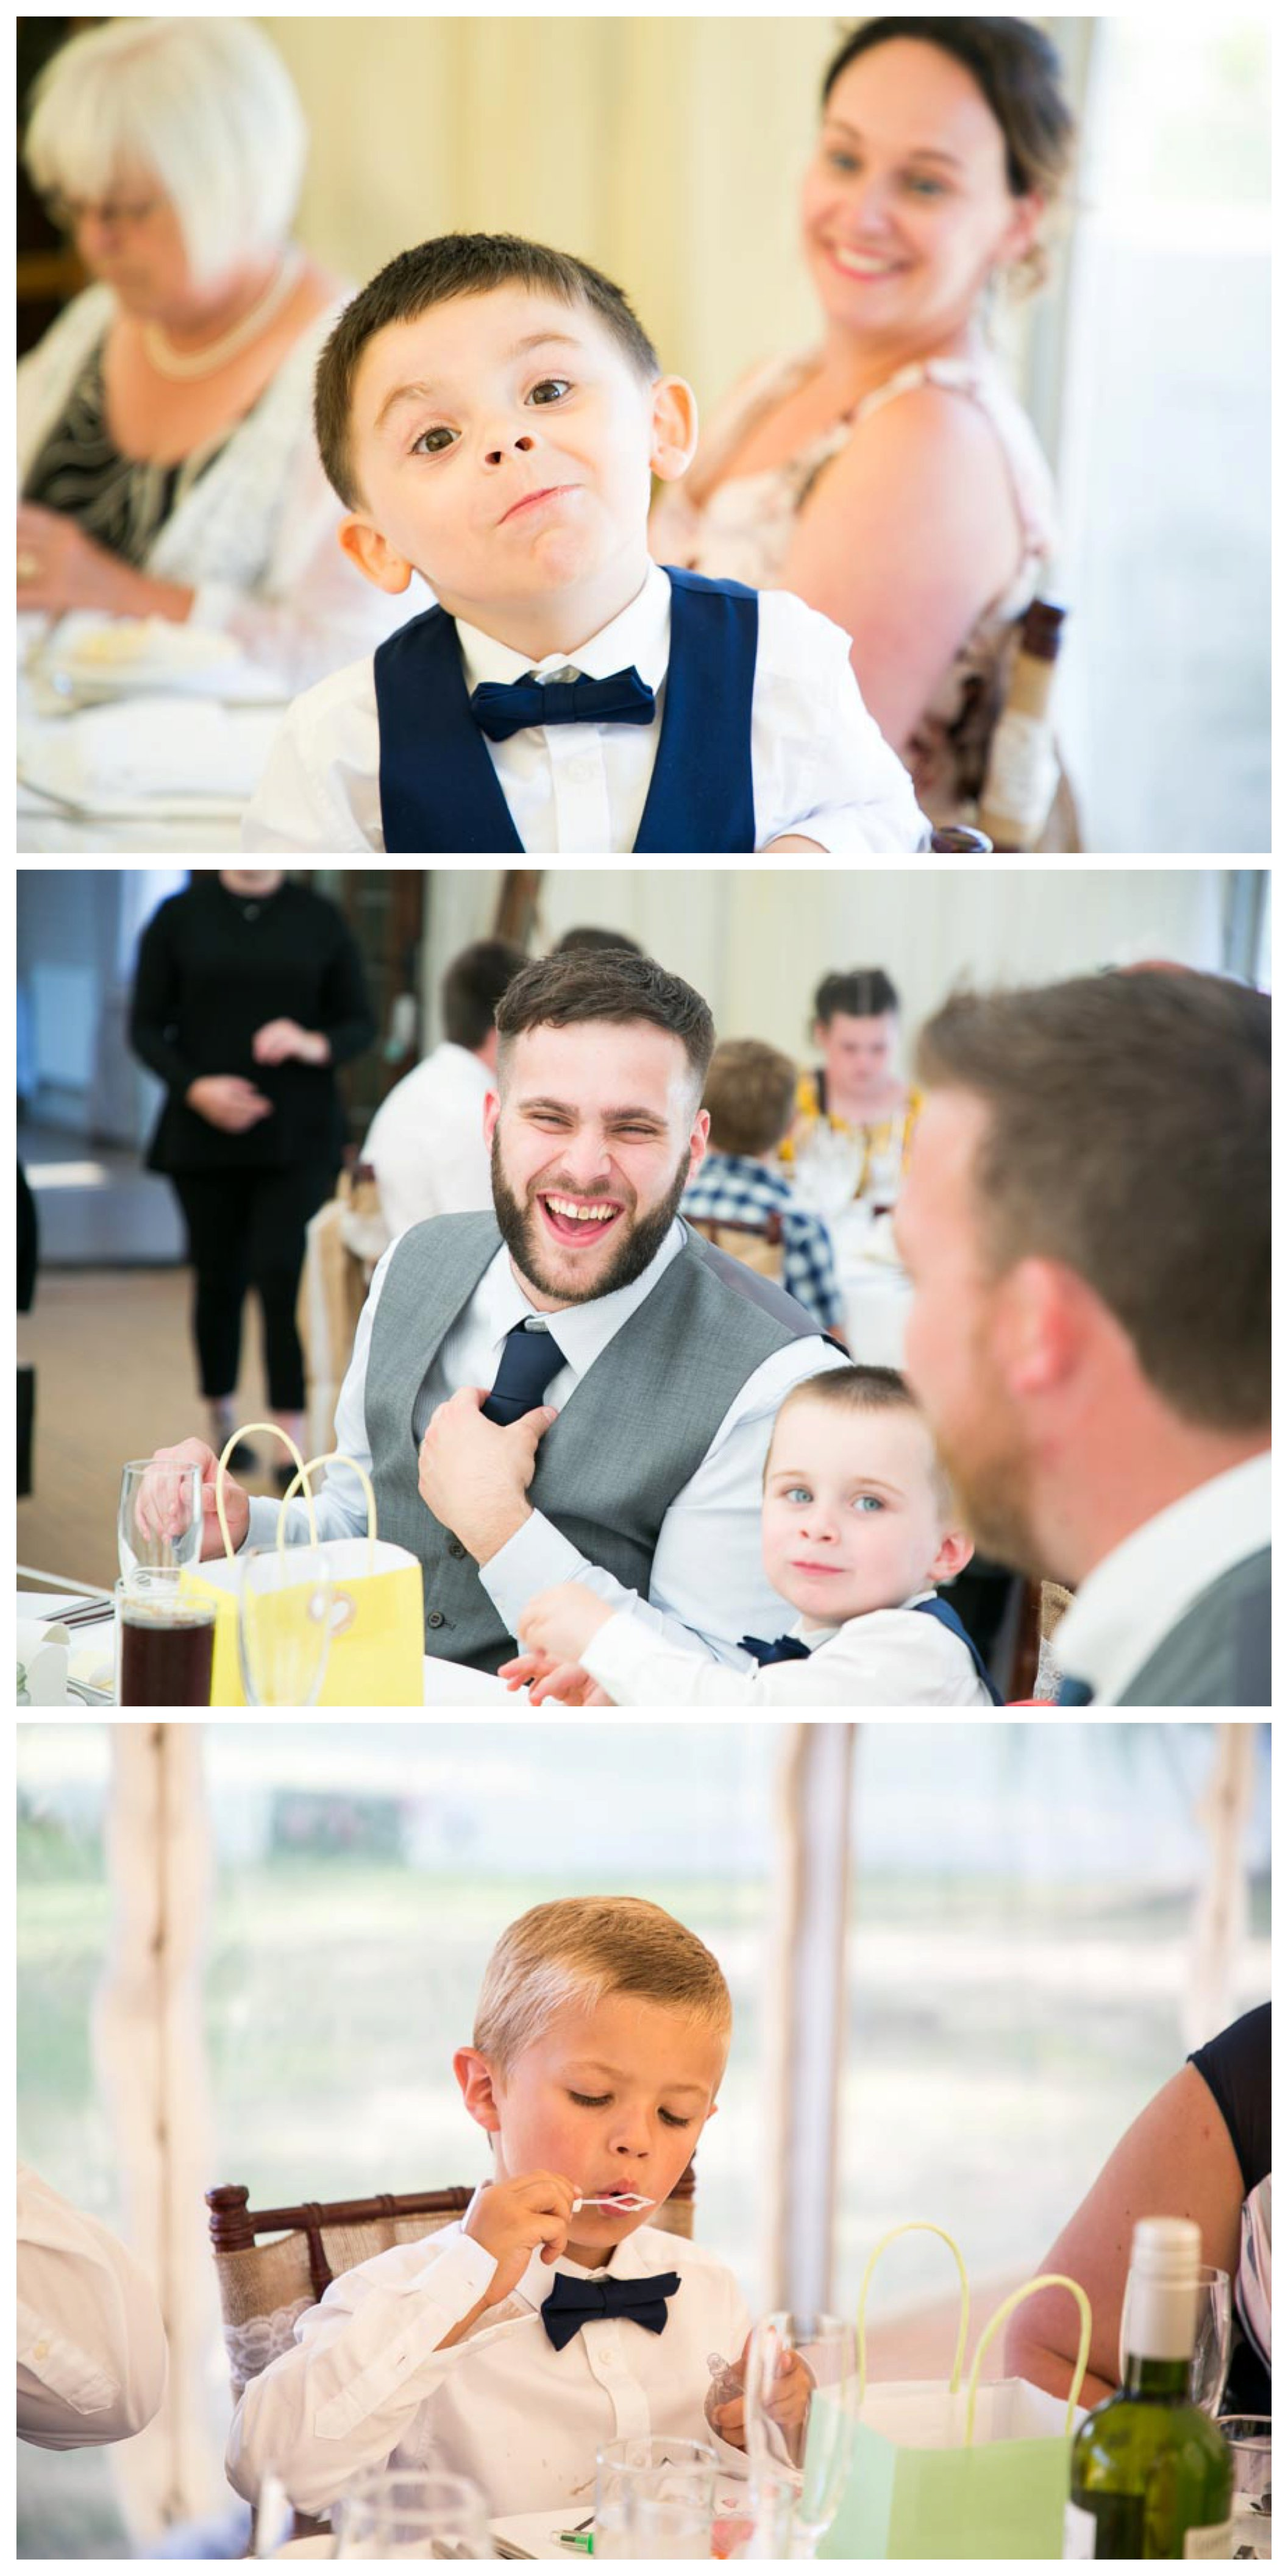 relaxed photos of people having fun at wedding breakfast at Seckford Hall